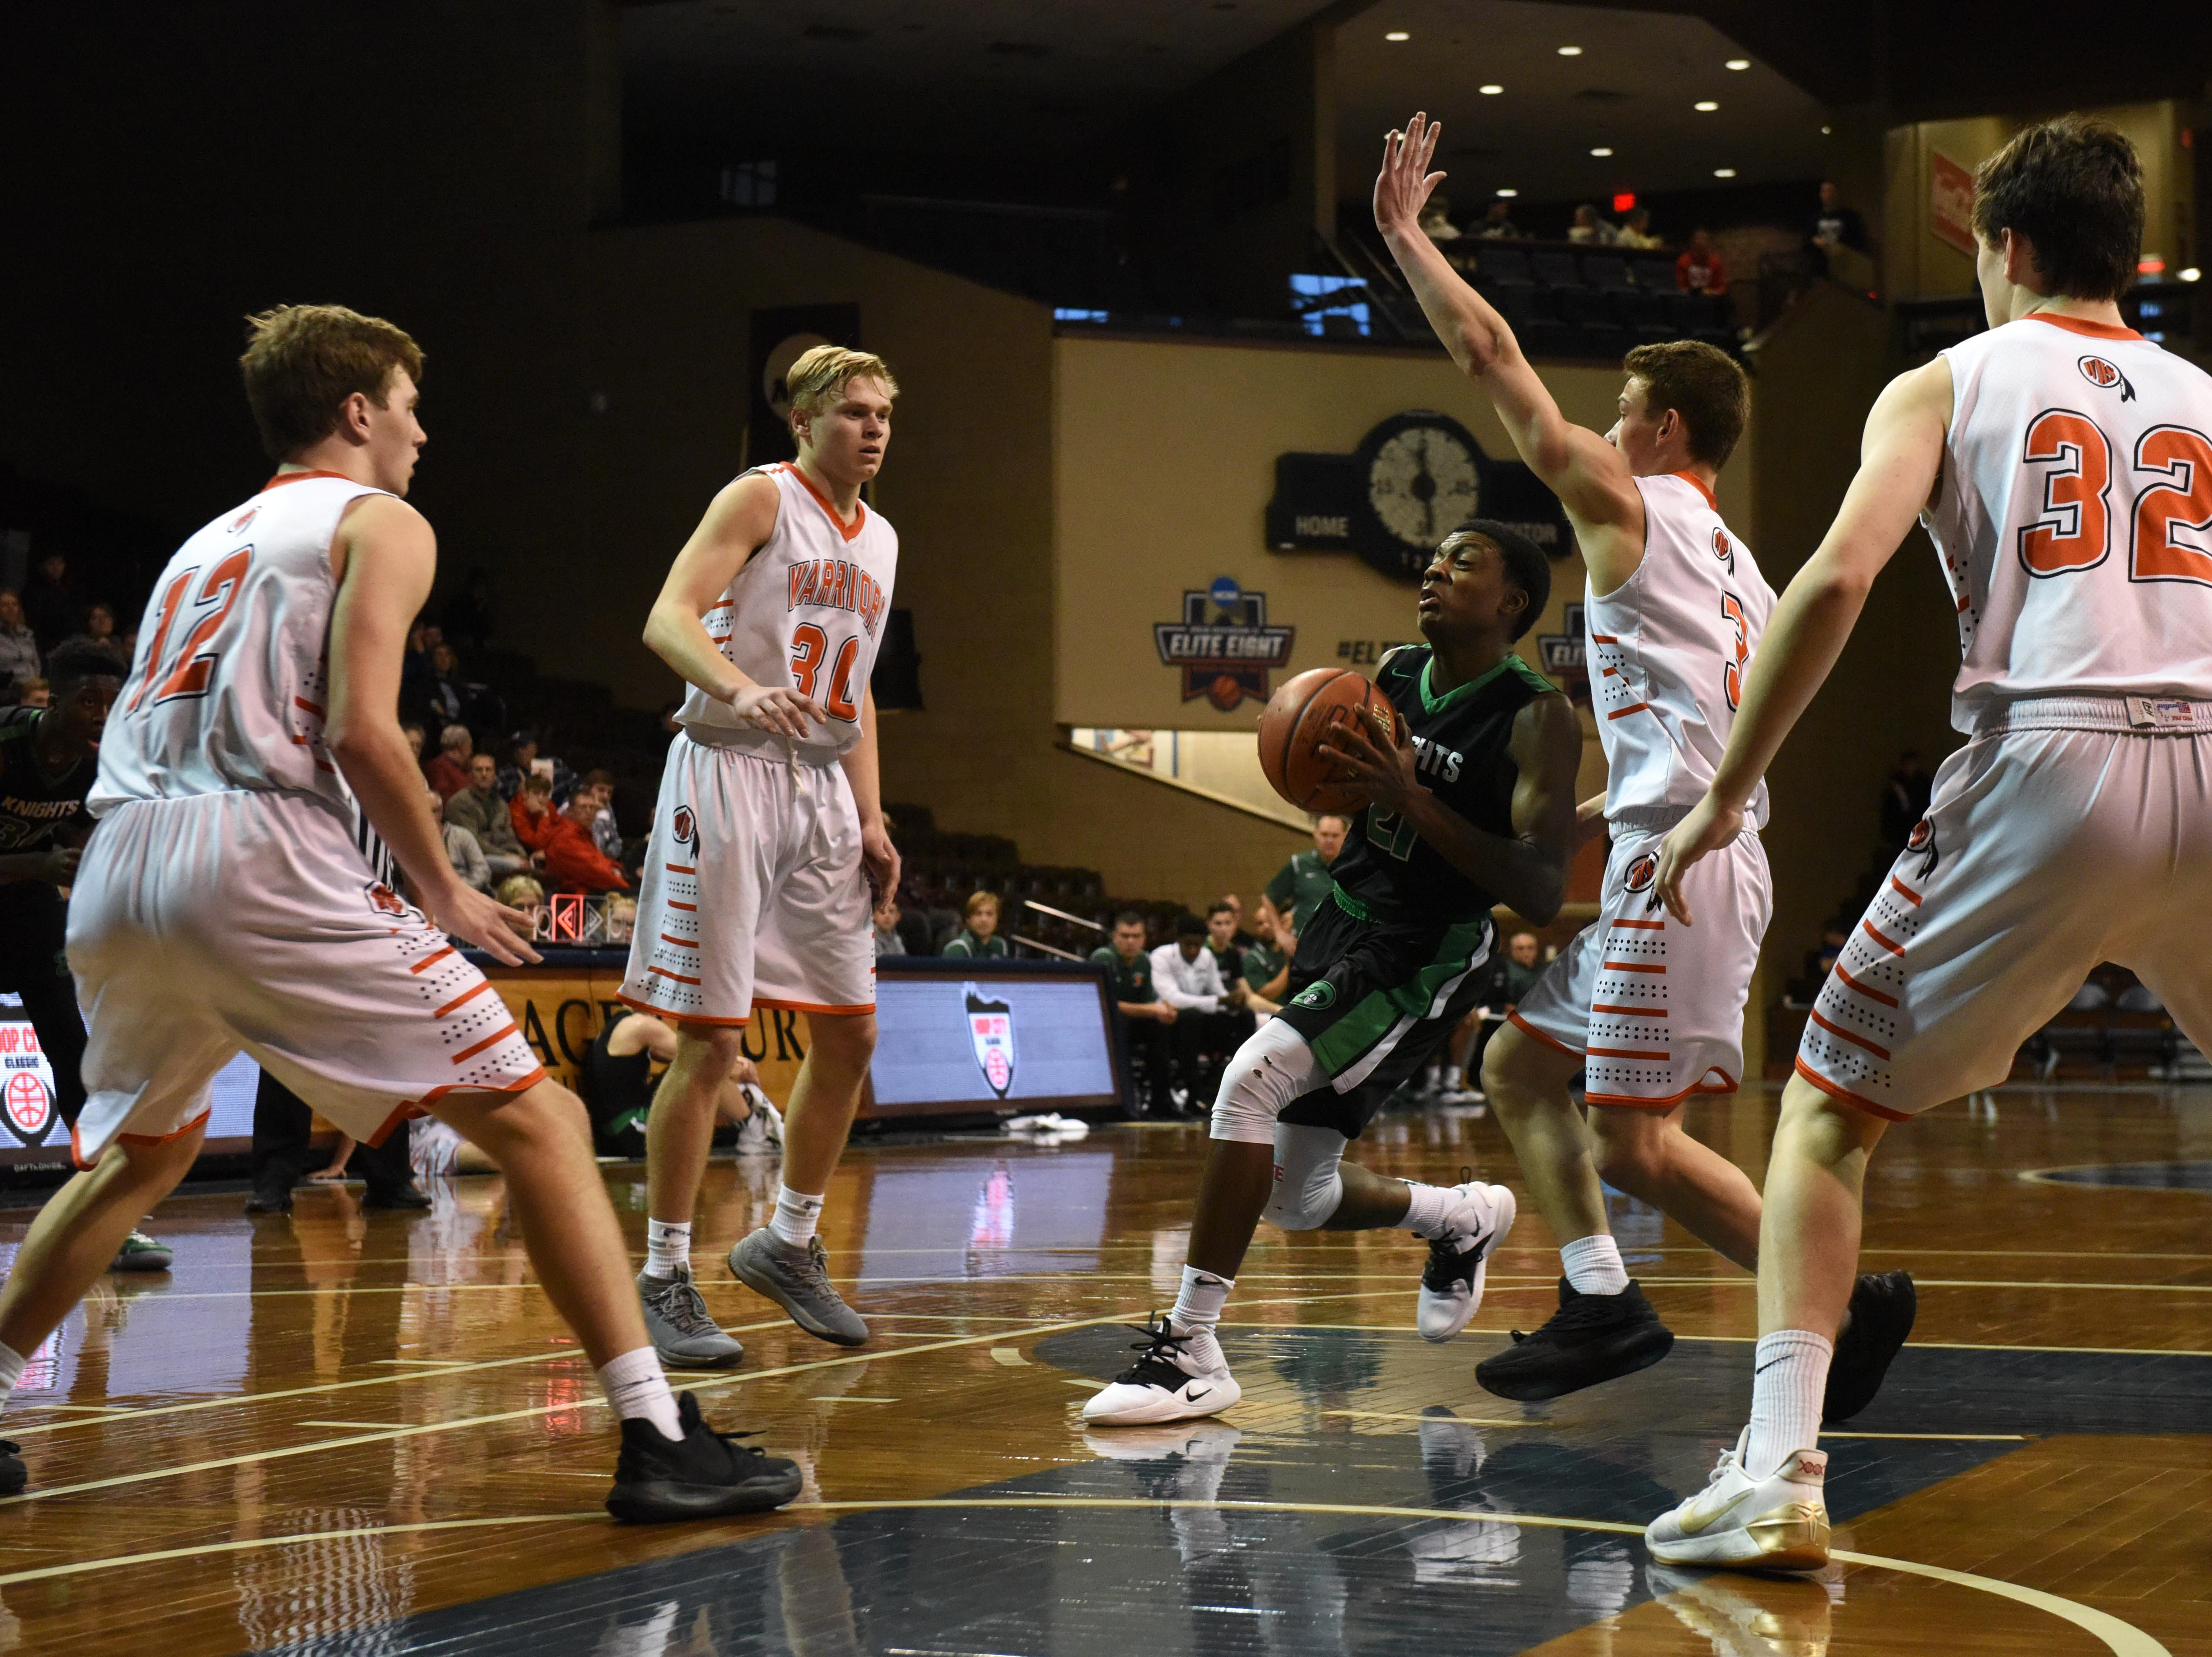 Dominican's Eferin Burns (21) dribbles the ball past Washington players at the Hoop City Classic at the Sanford Pentagon in Sioux Falls, S.D., Saturday, Dec. 29, 2018.